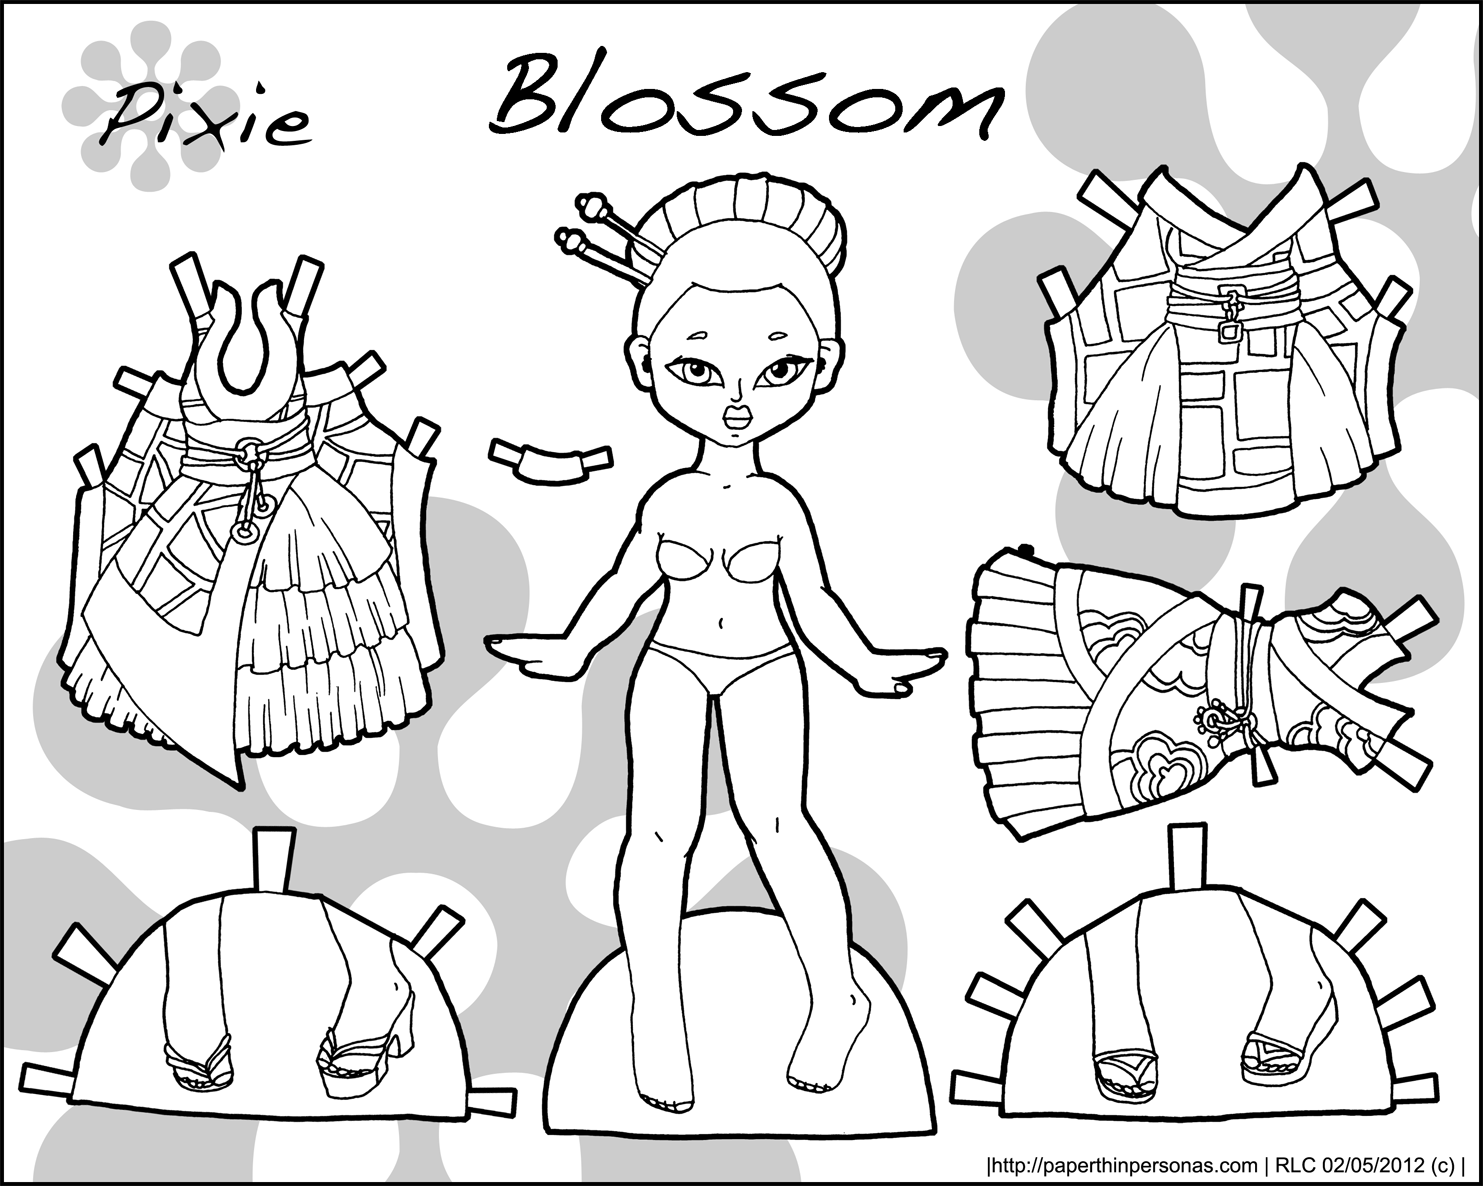 Pixie puck archives page 6 of 10 paper thin personas for Paper doll coloring page